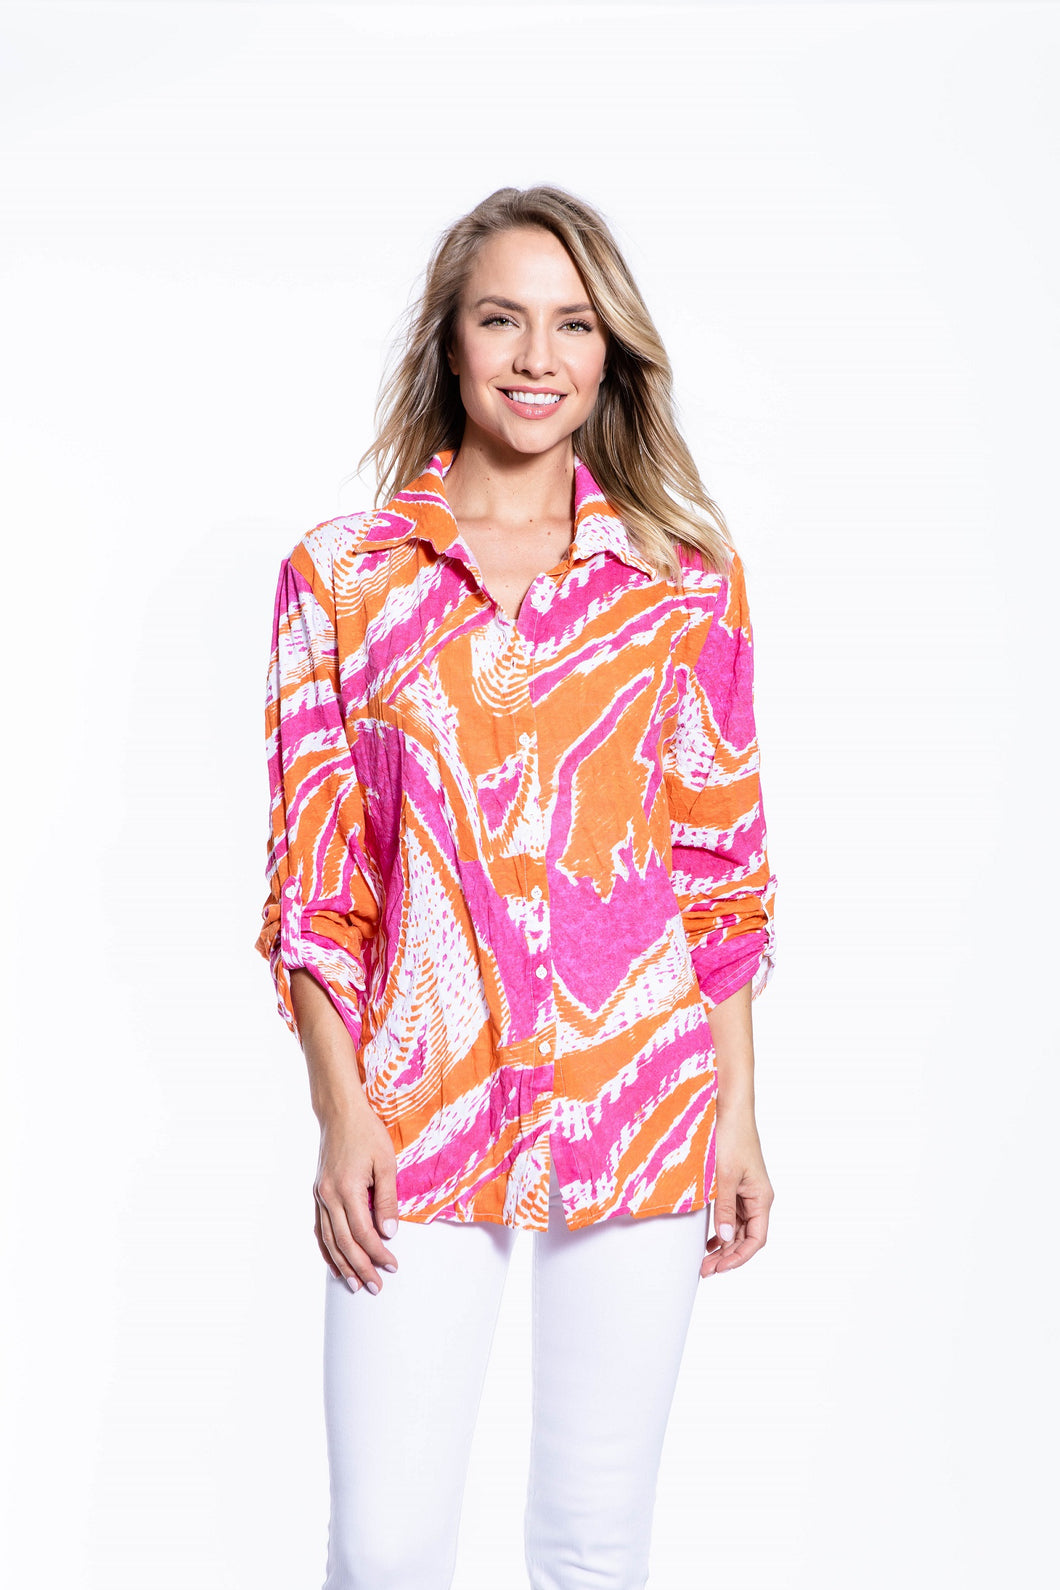 Crinkle Knit Women's Fashion Blouse with Rollup Sleeves - Hot Lava - Ondululations womens silk dresses